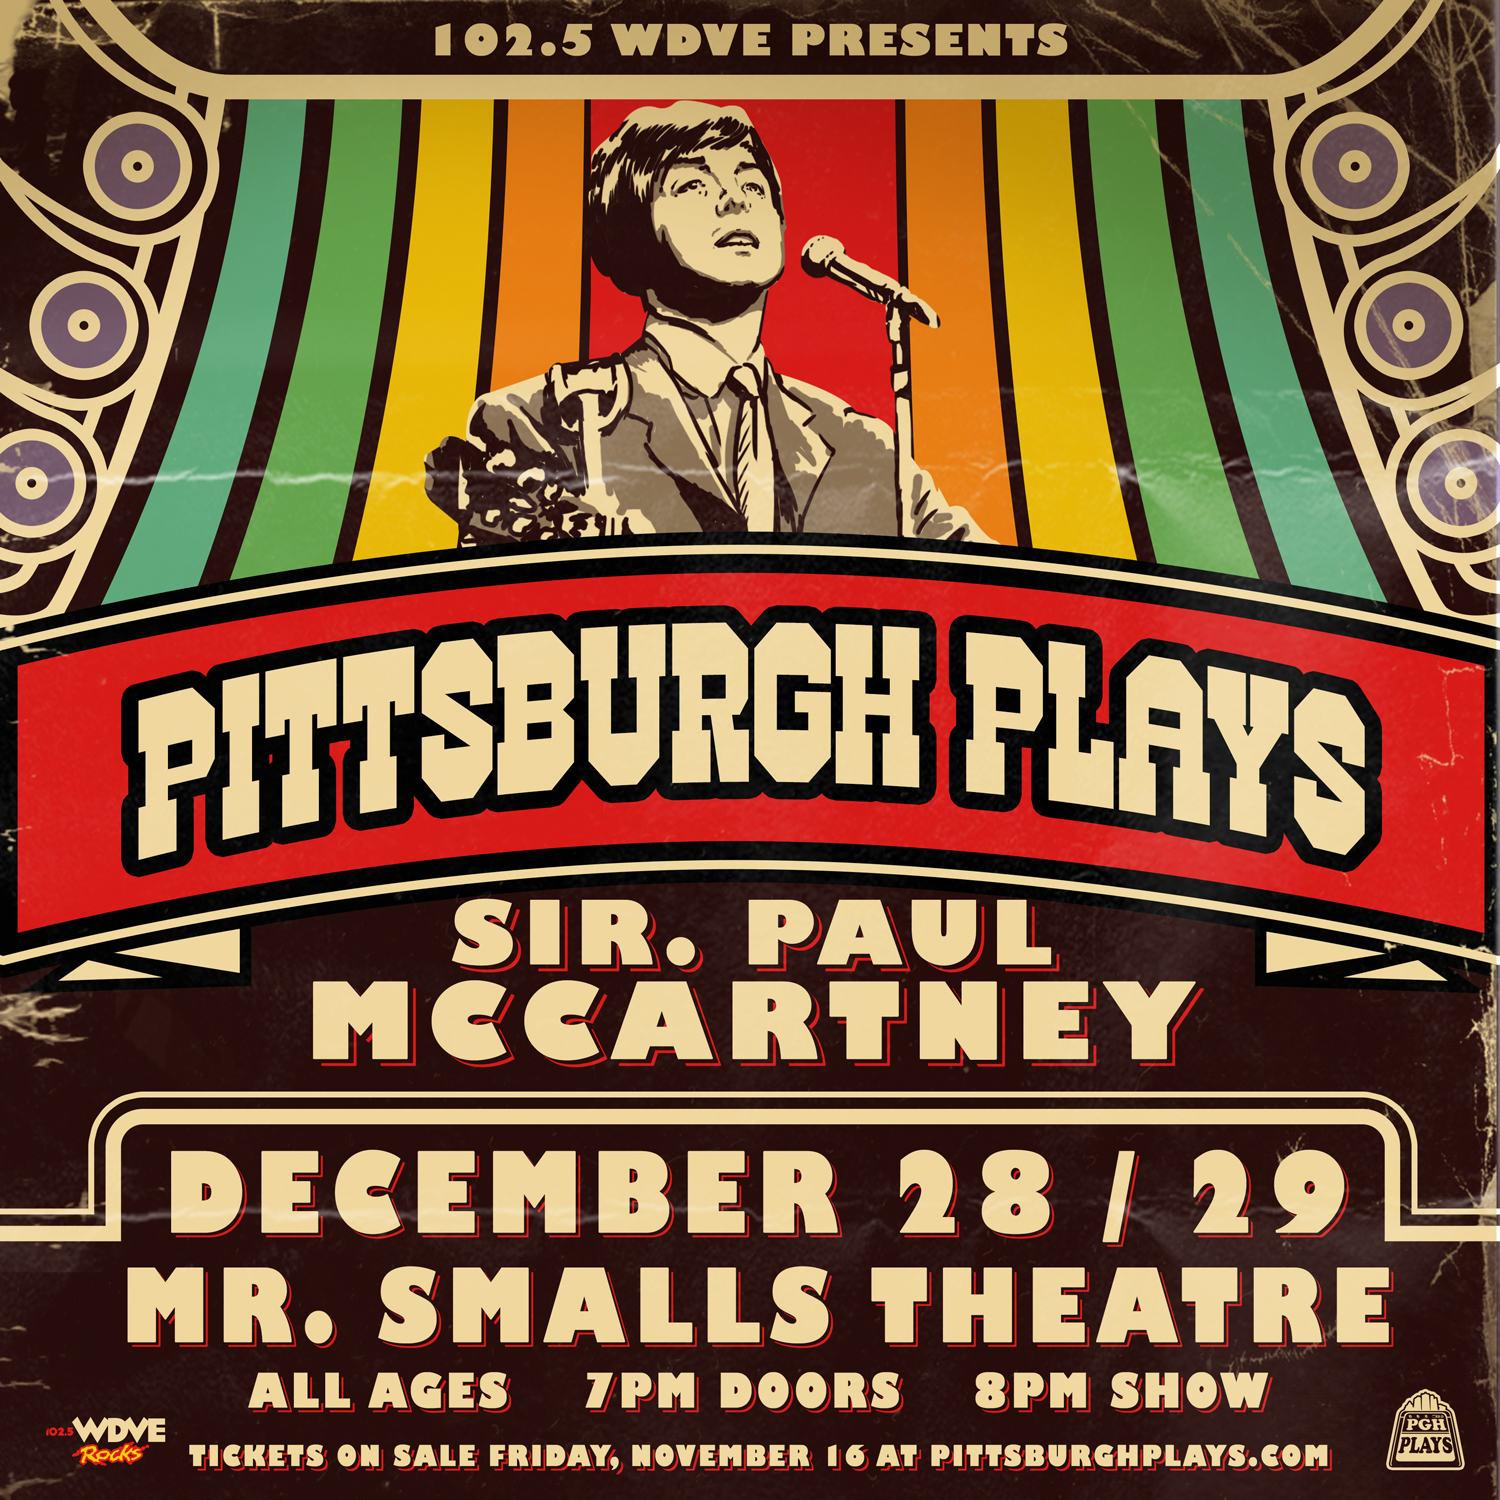 PittsburghPlaysPaul_Square_Small.jpg